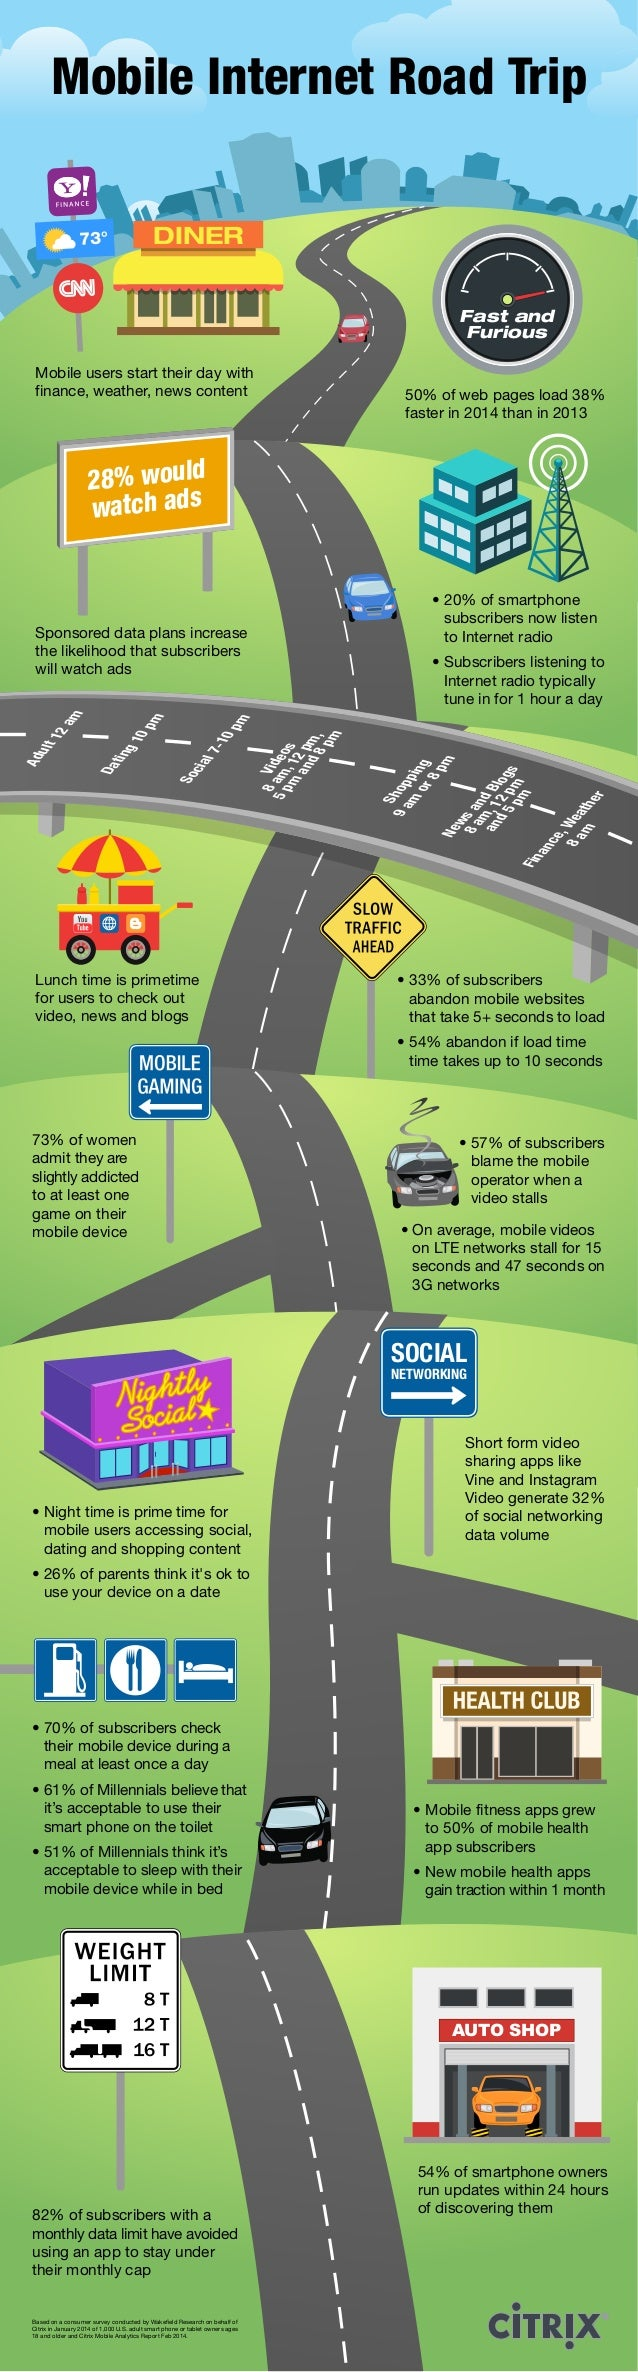 Roadtripping with your mobile device [Infographic]